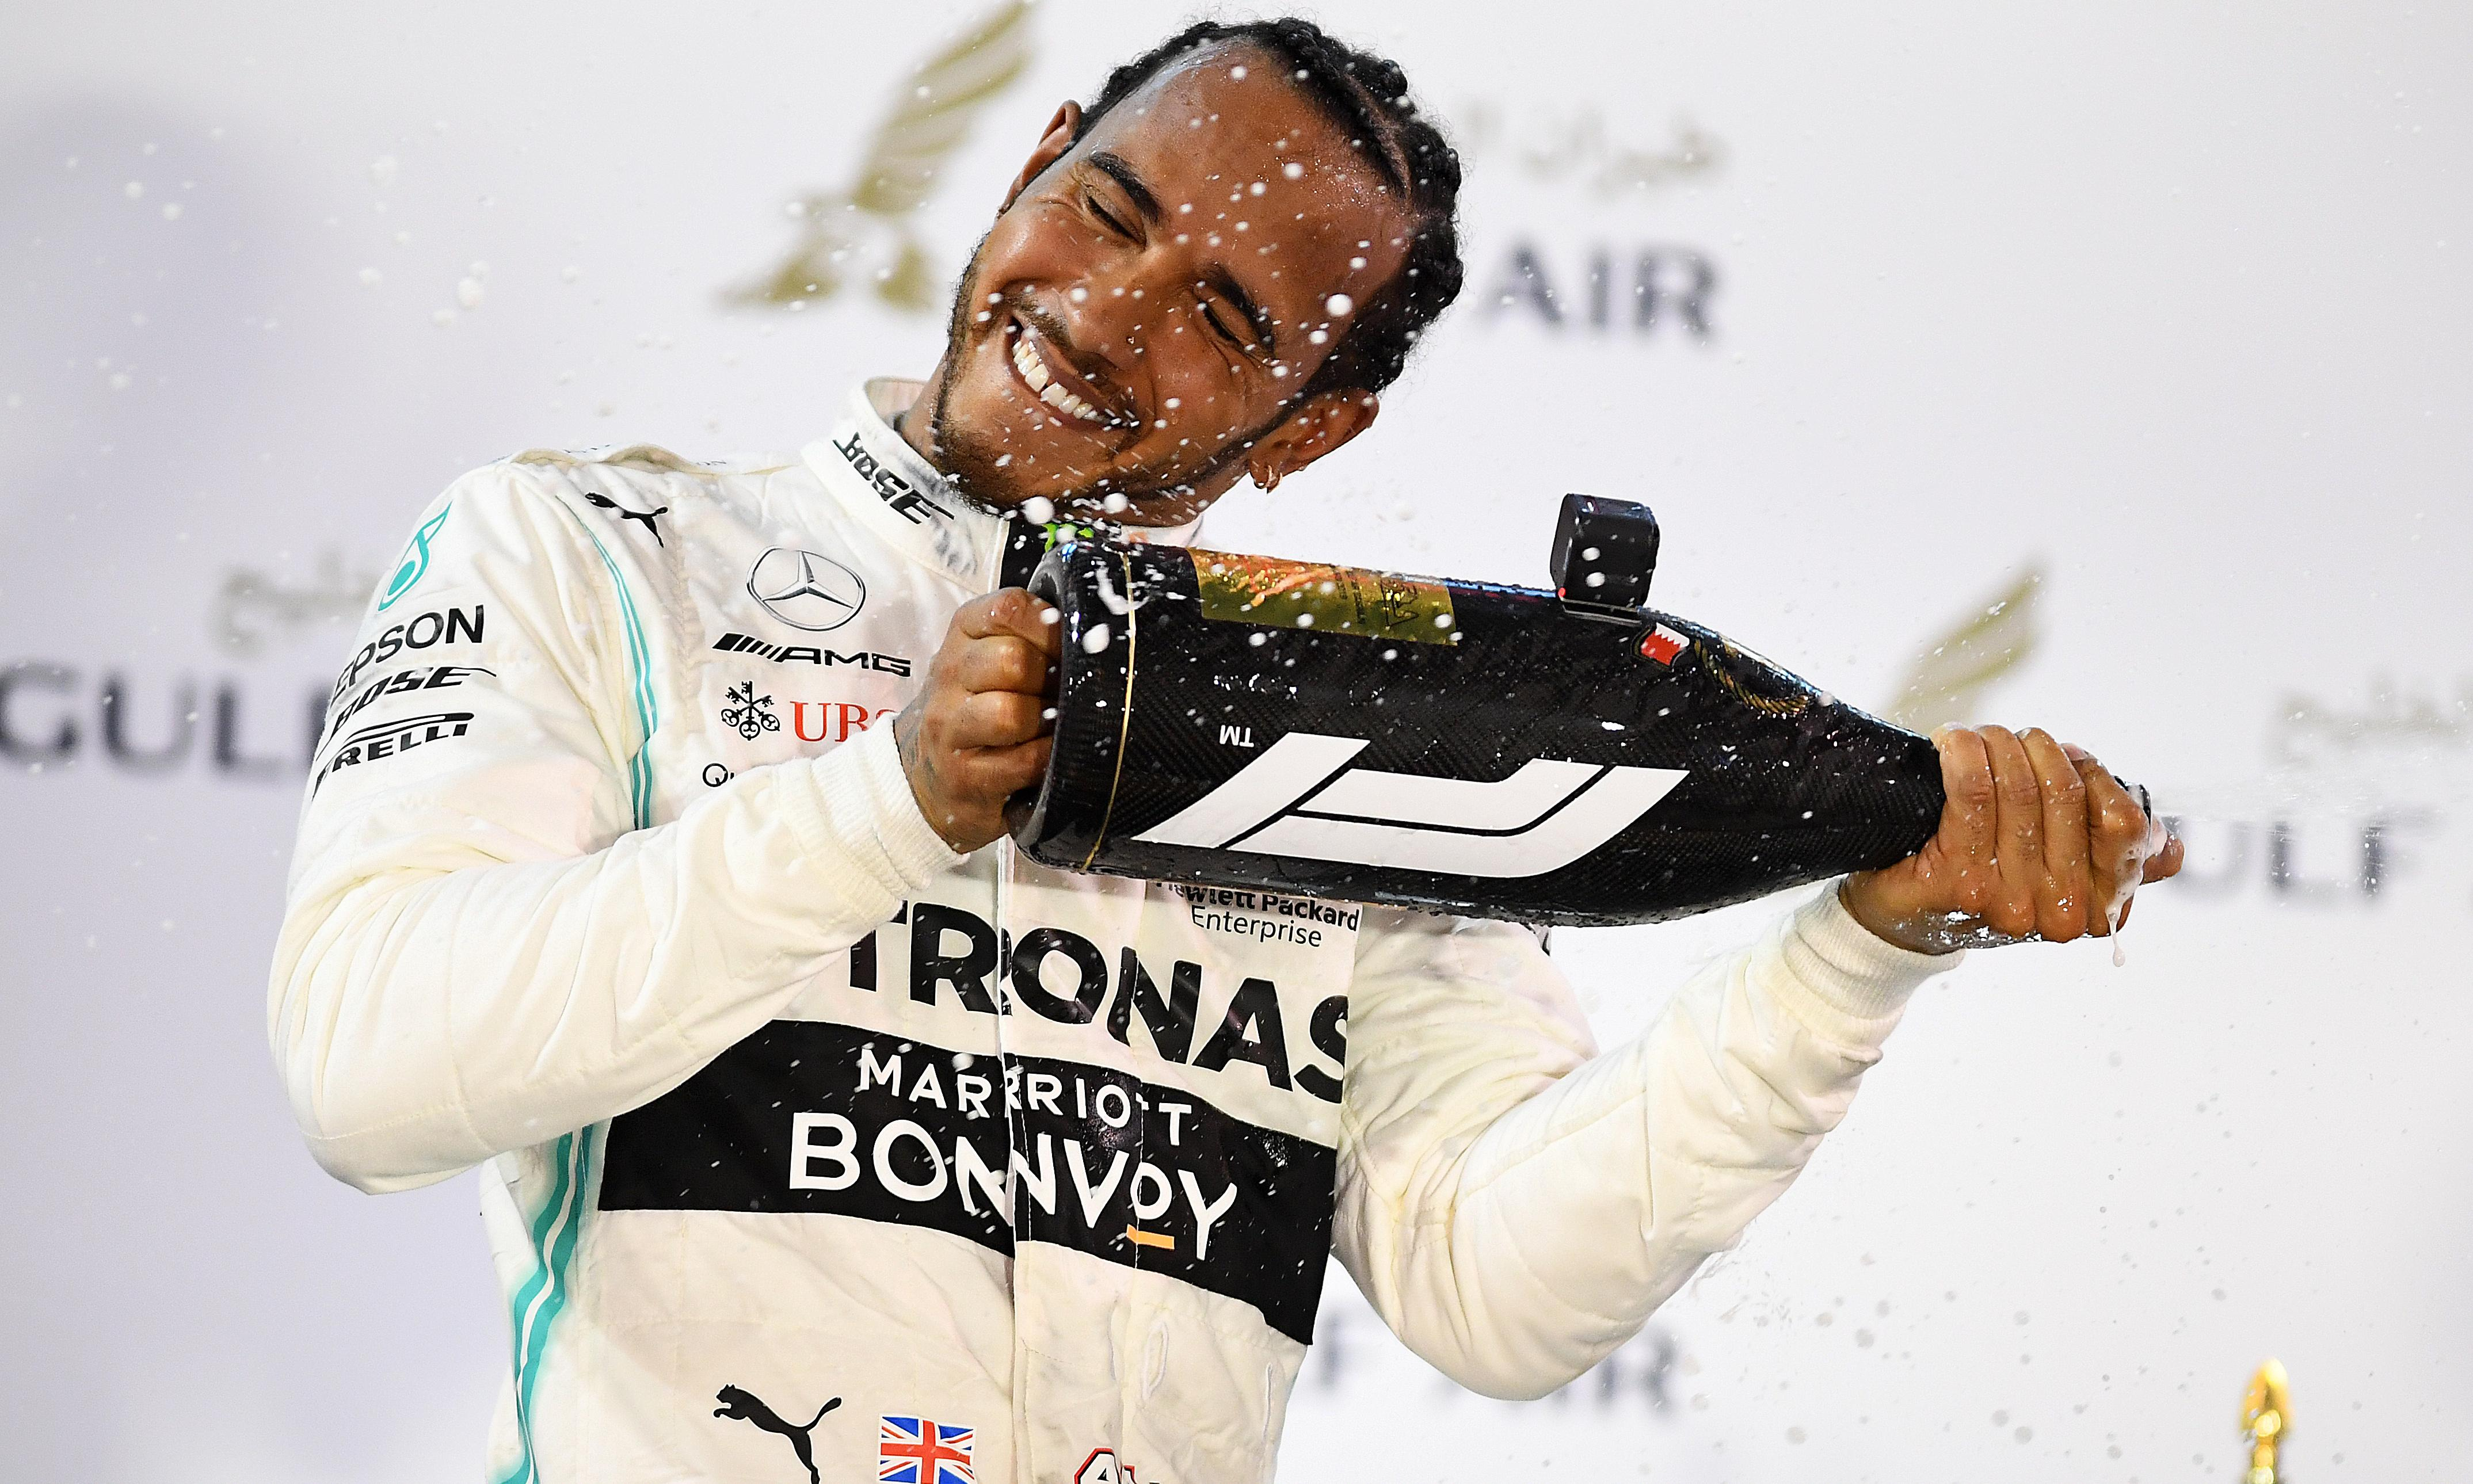 Lewis Hamilton wins in Bahrain after Charles Leclerc loses power and lead